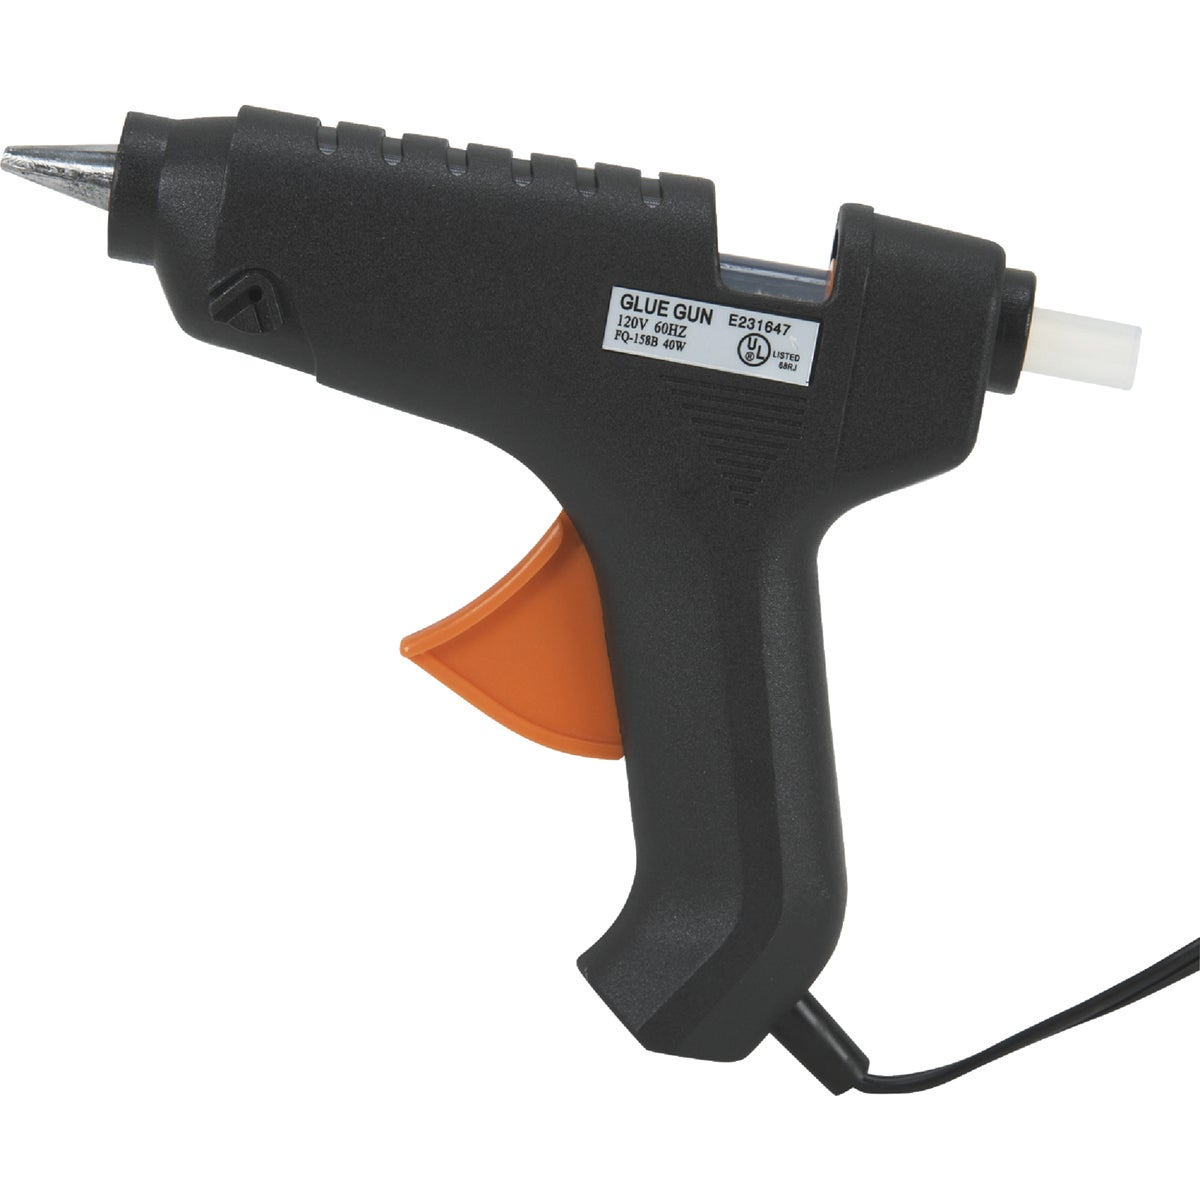 HI-TEMPERATURE GLUE GUN - 349747 by Do it Best